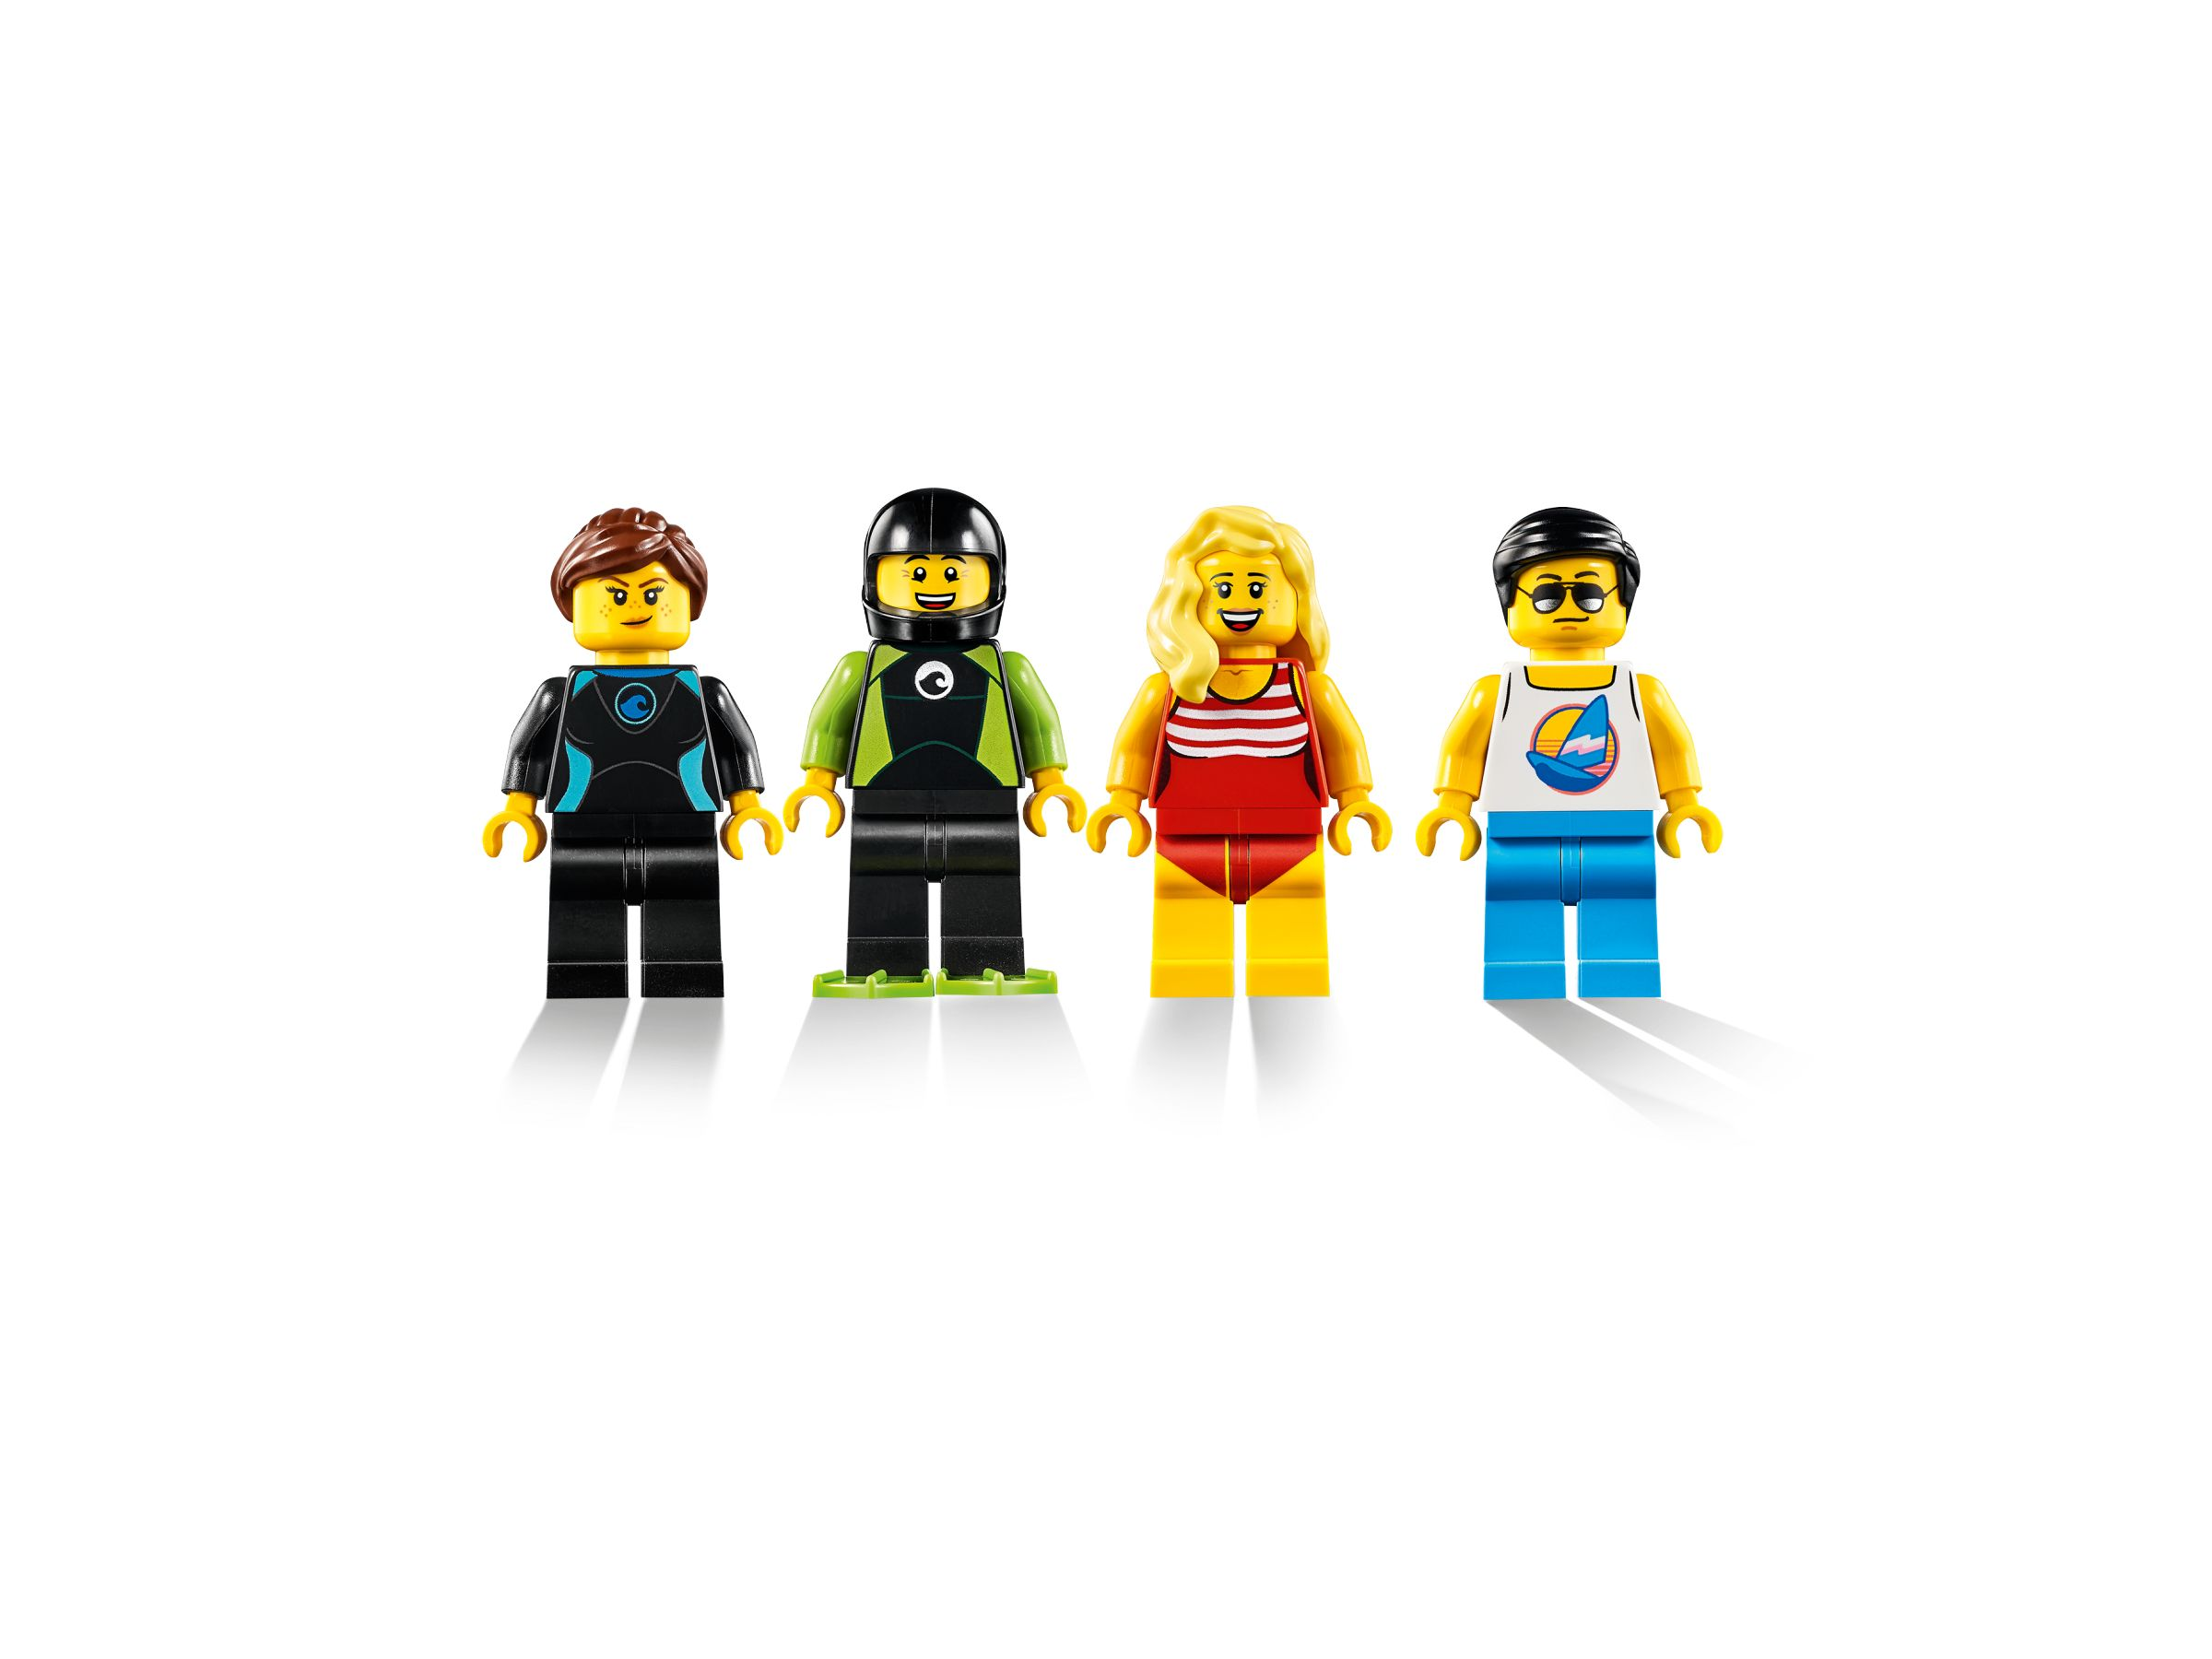 LEGO Miscellaneous 40344 Minifiguren-Set – Sommerparty LEGO_40344_alt3.jpg